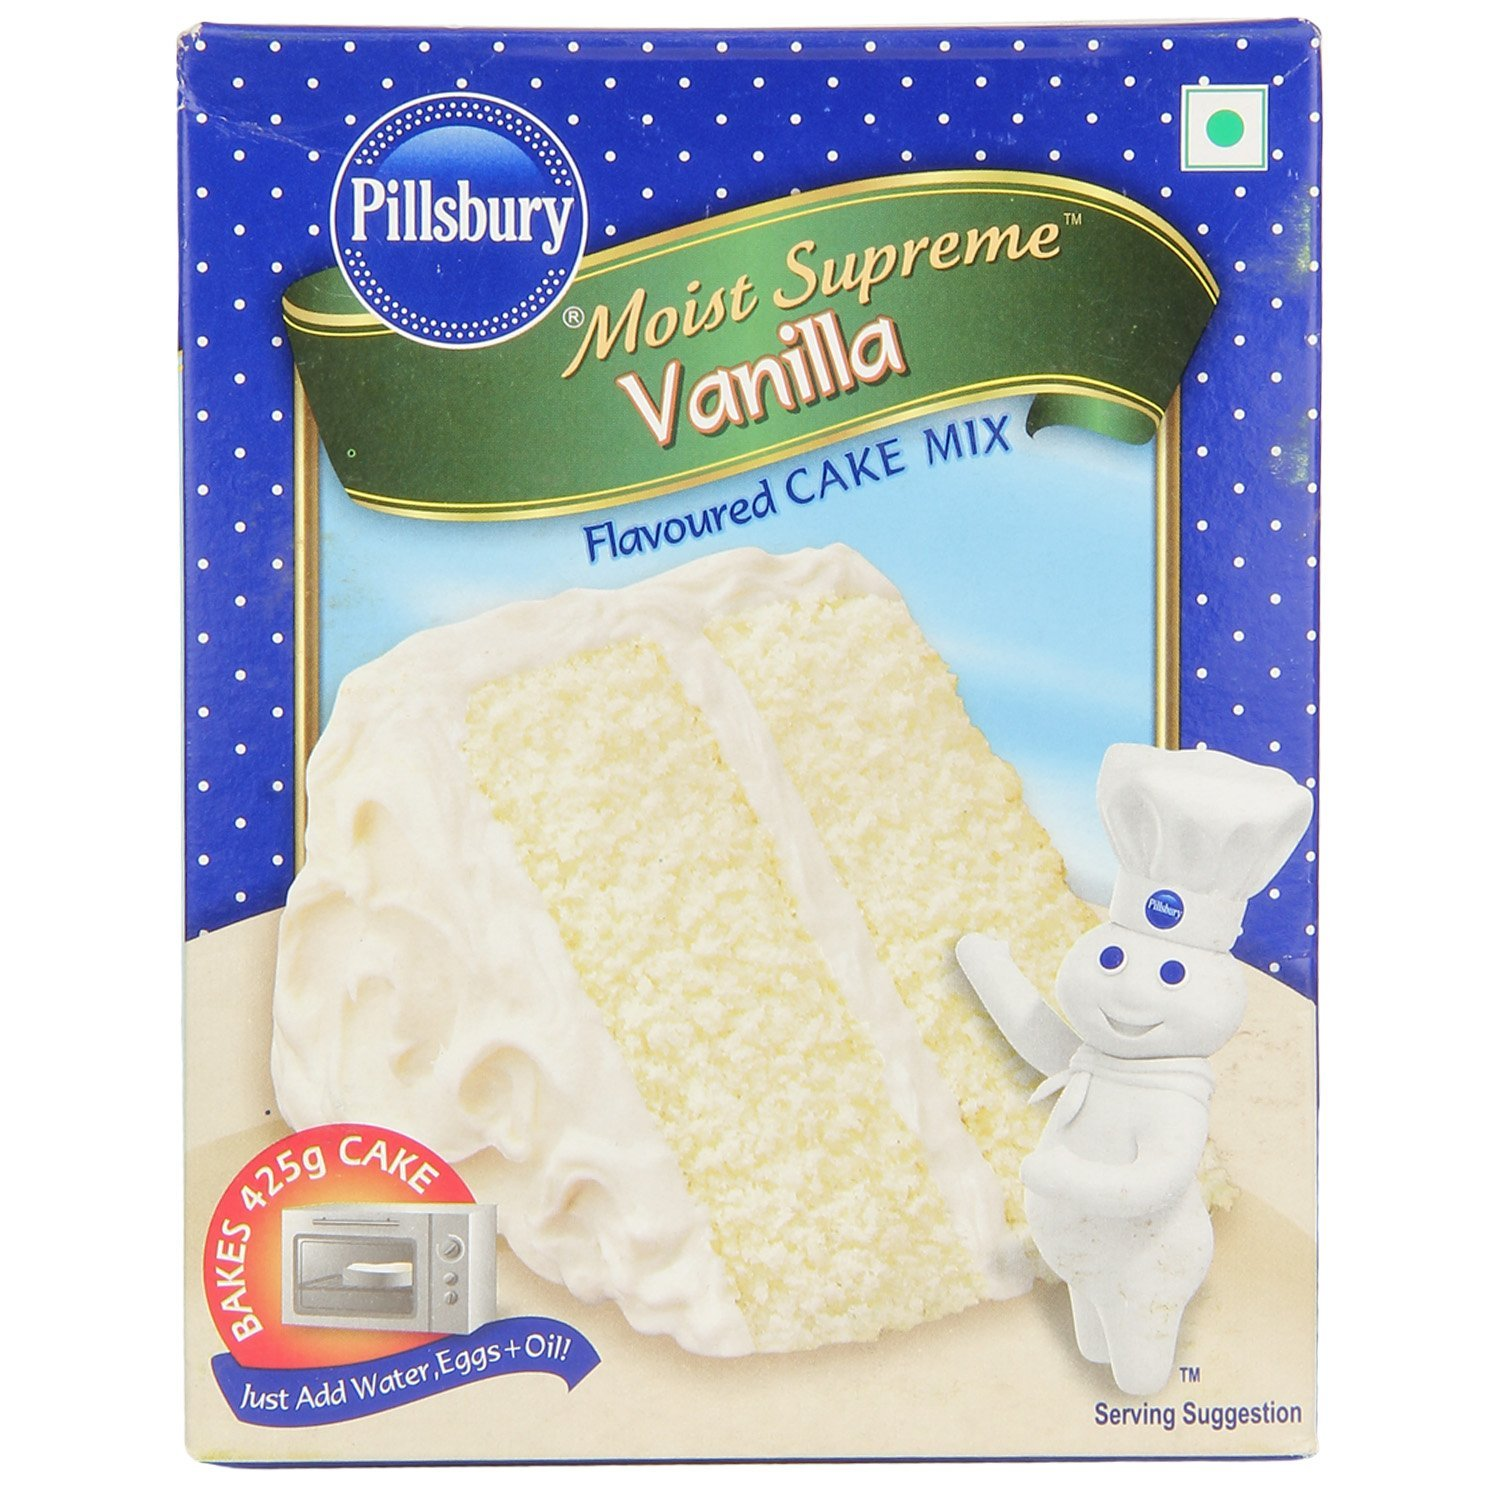 Pillsbury Cake Mix Moist Supreme Vanilla